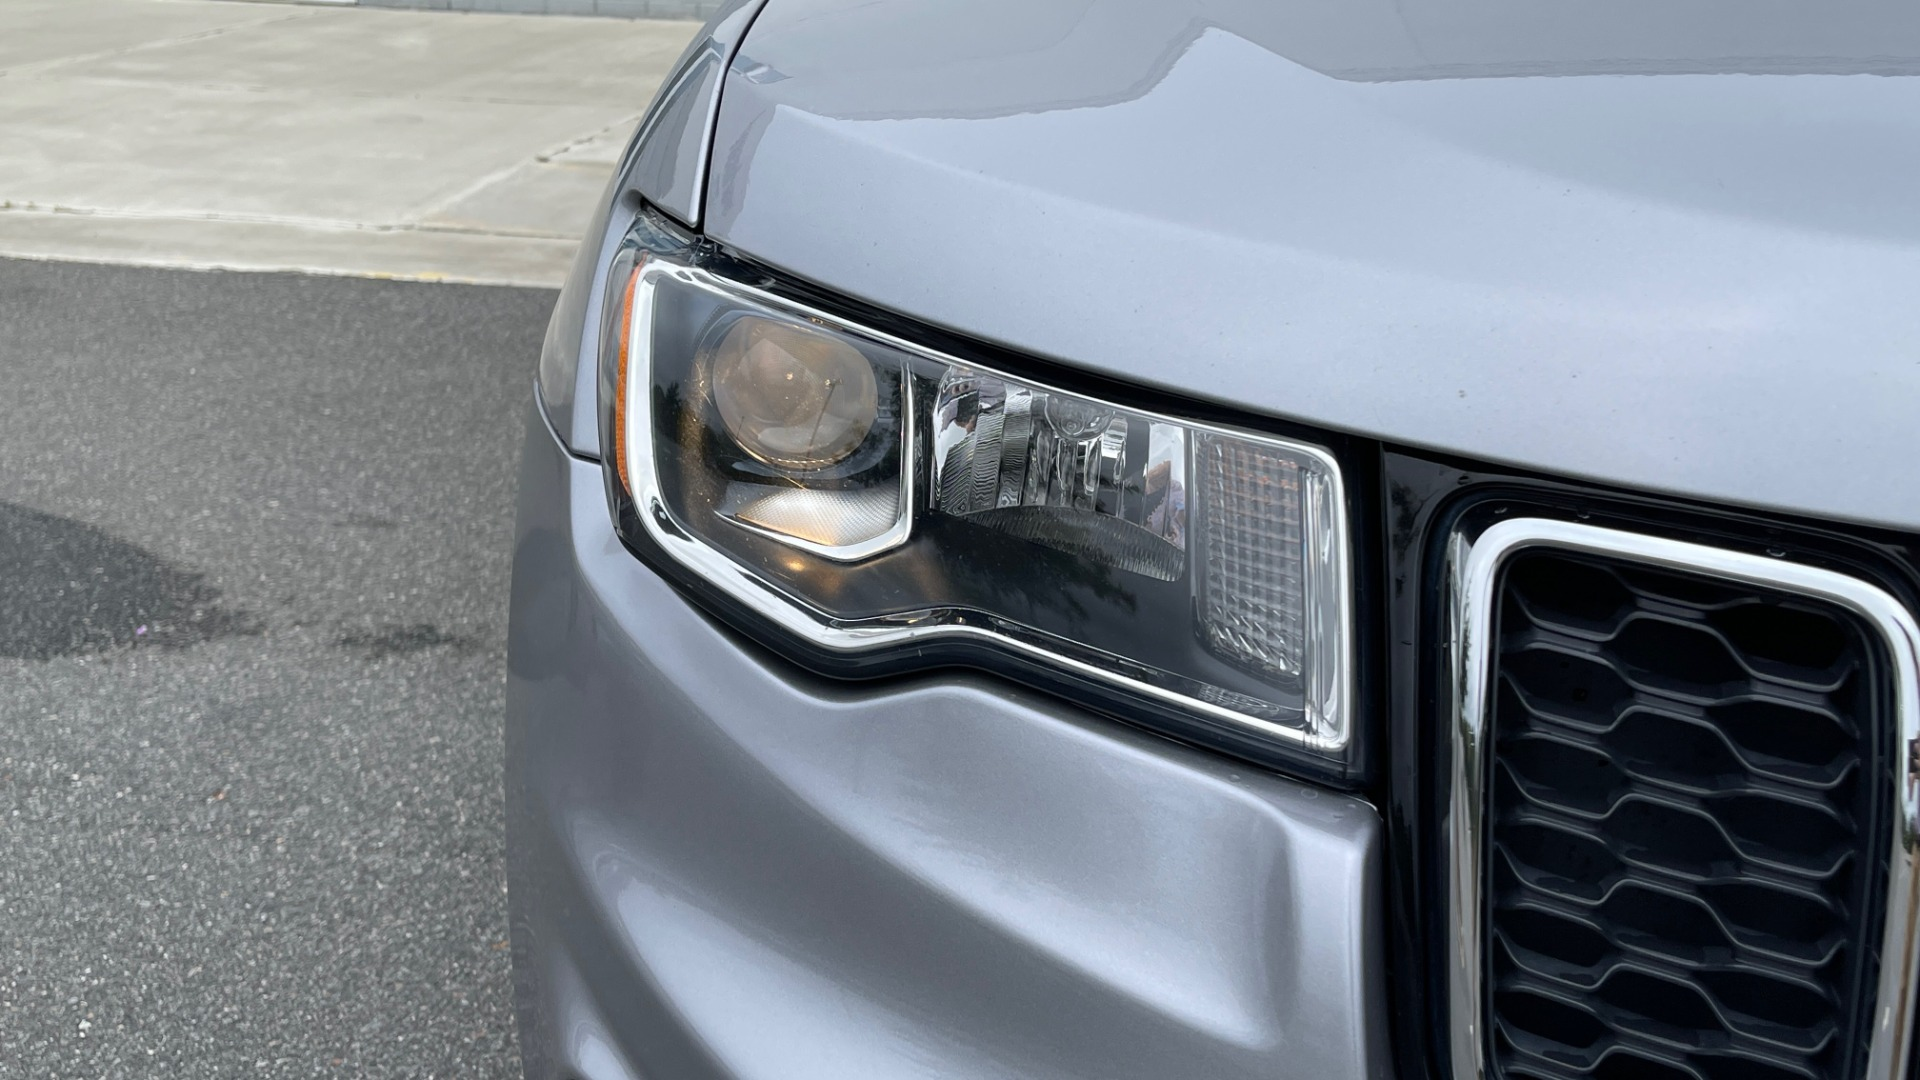 Used 2017 Jeep GRAND CHEROKEE LAREDO E 4X4 / KEYLESS-GO / 8.4IN TOUCH SCREEN / REARVIEW for sale $27,595 at Formula Imports in Charlotte NC 28227 11